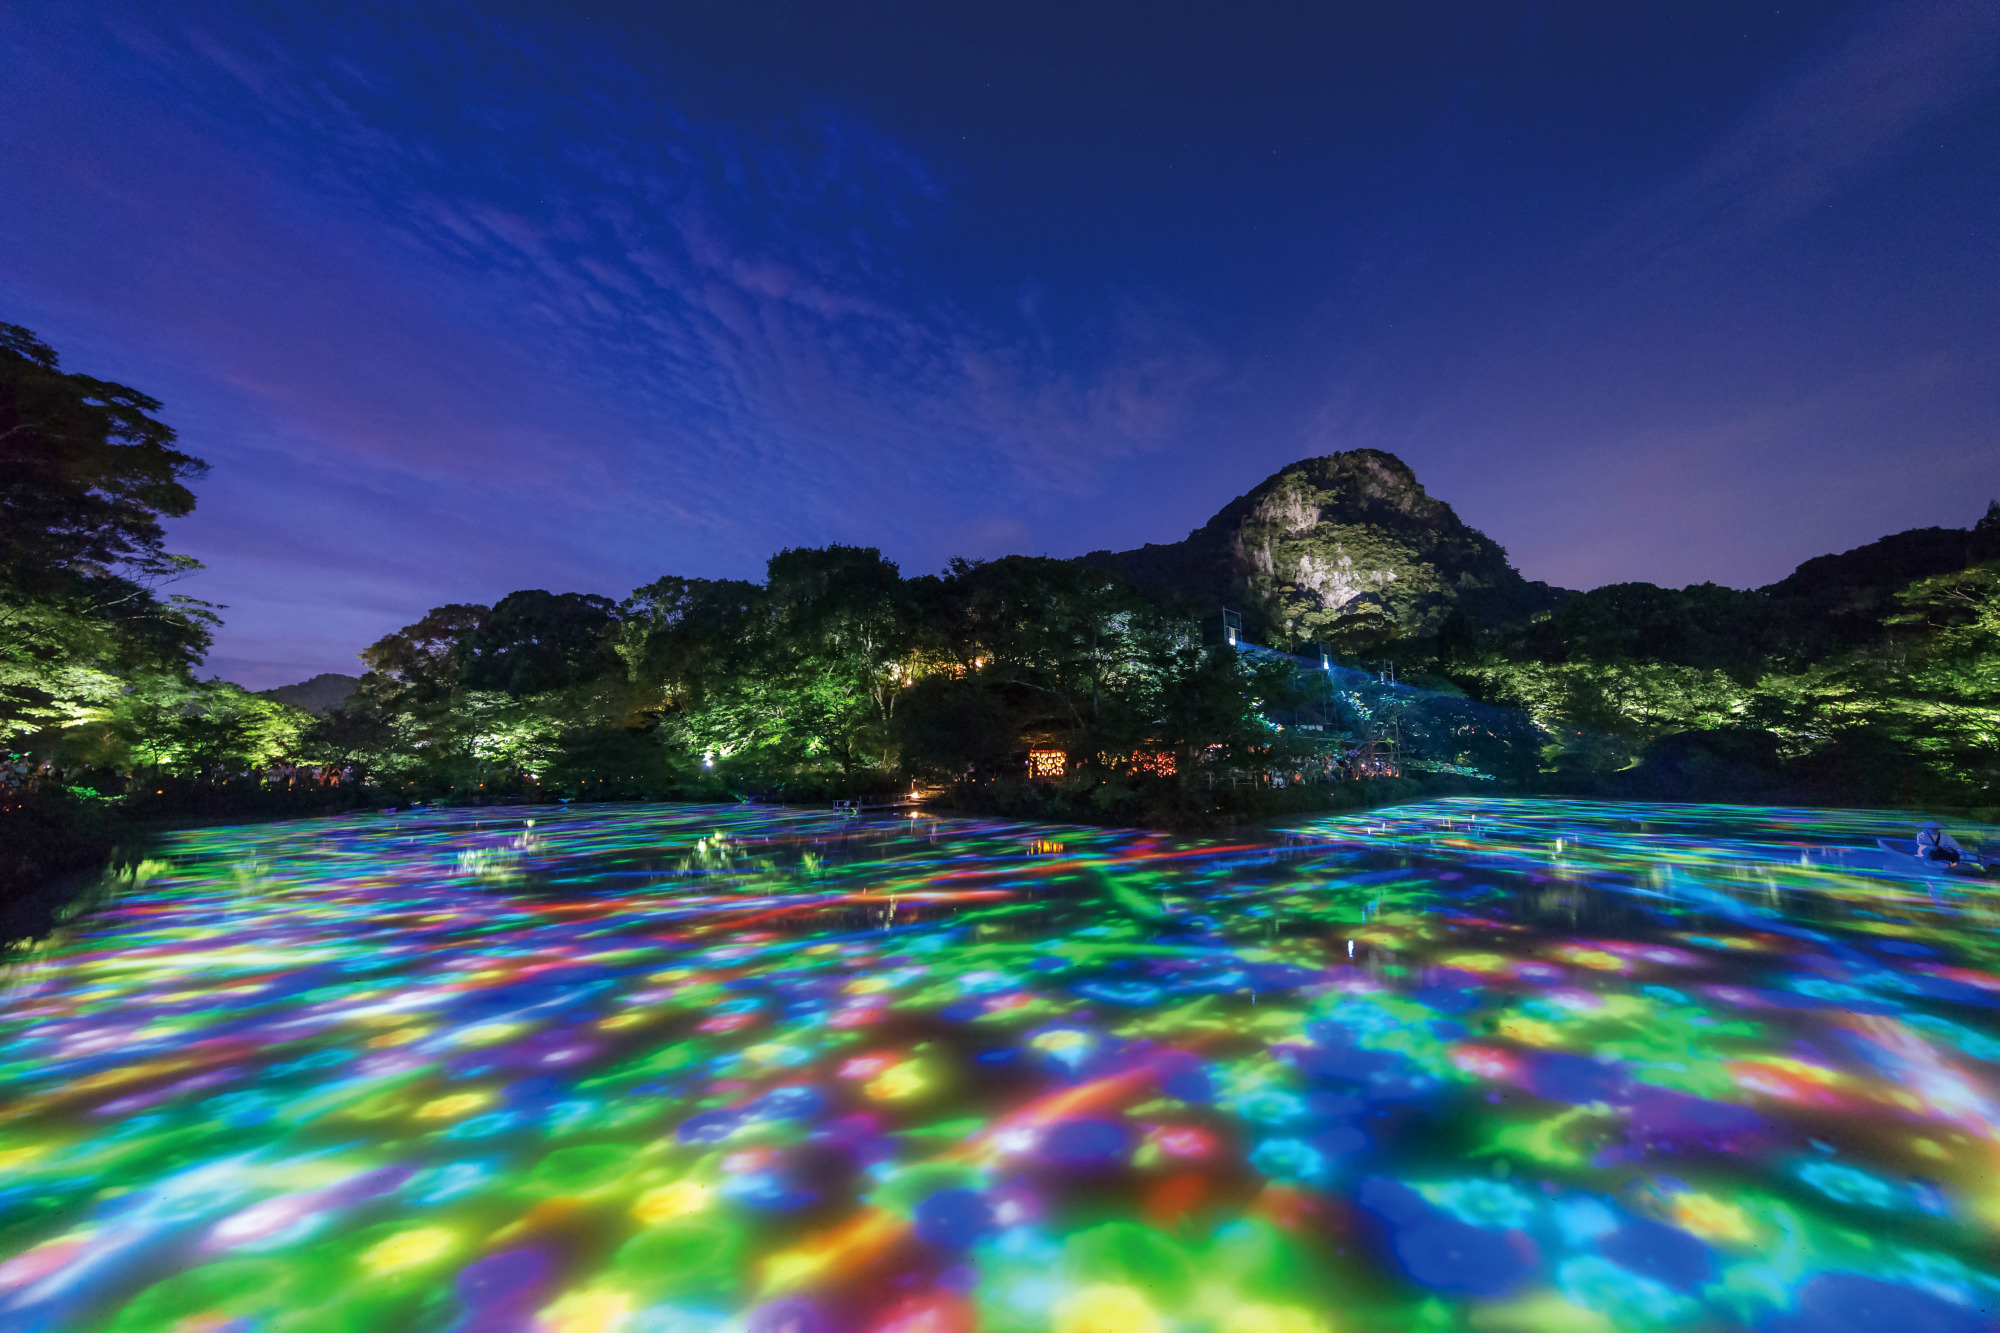 'Drawing on the Water Surface Created by the Dance of Koi and Boats,' 'A Forest Where Gods Live' | COURTESY OF TEAMLAB